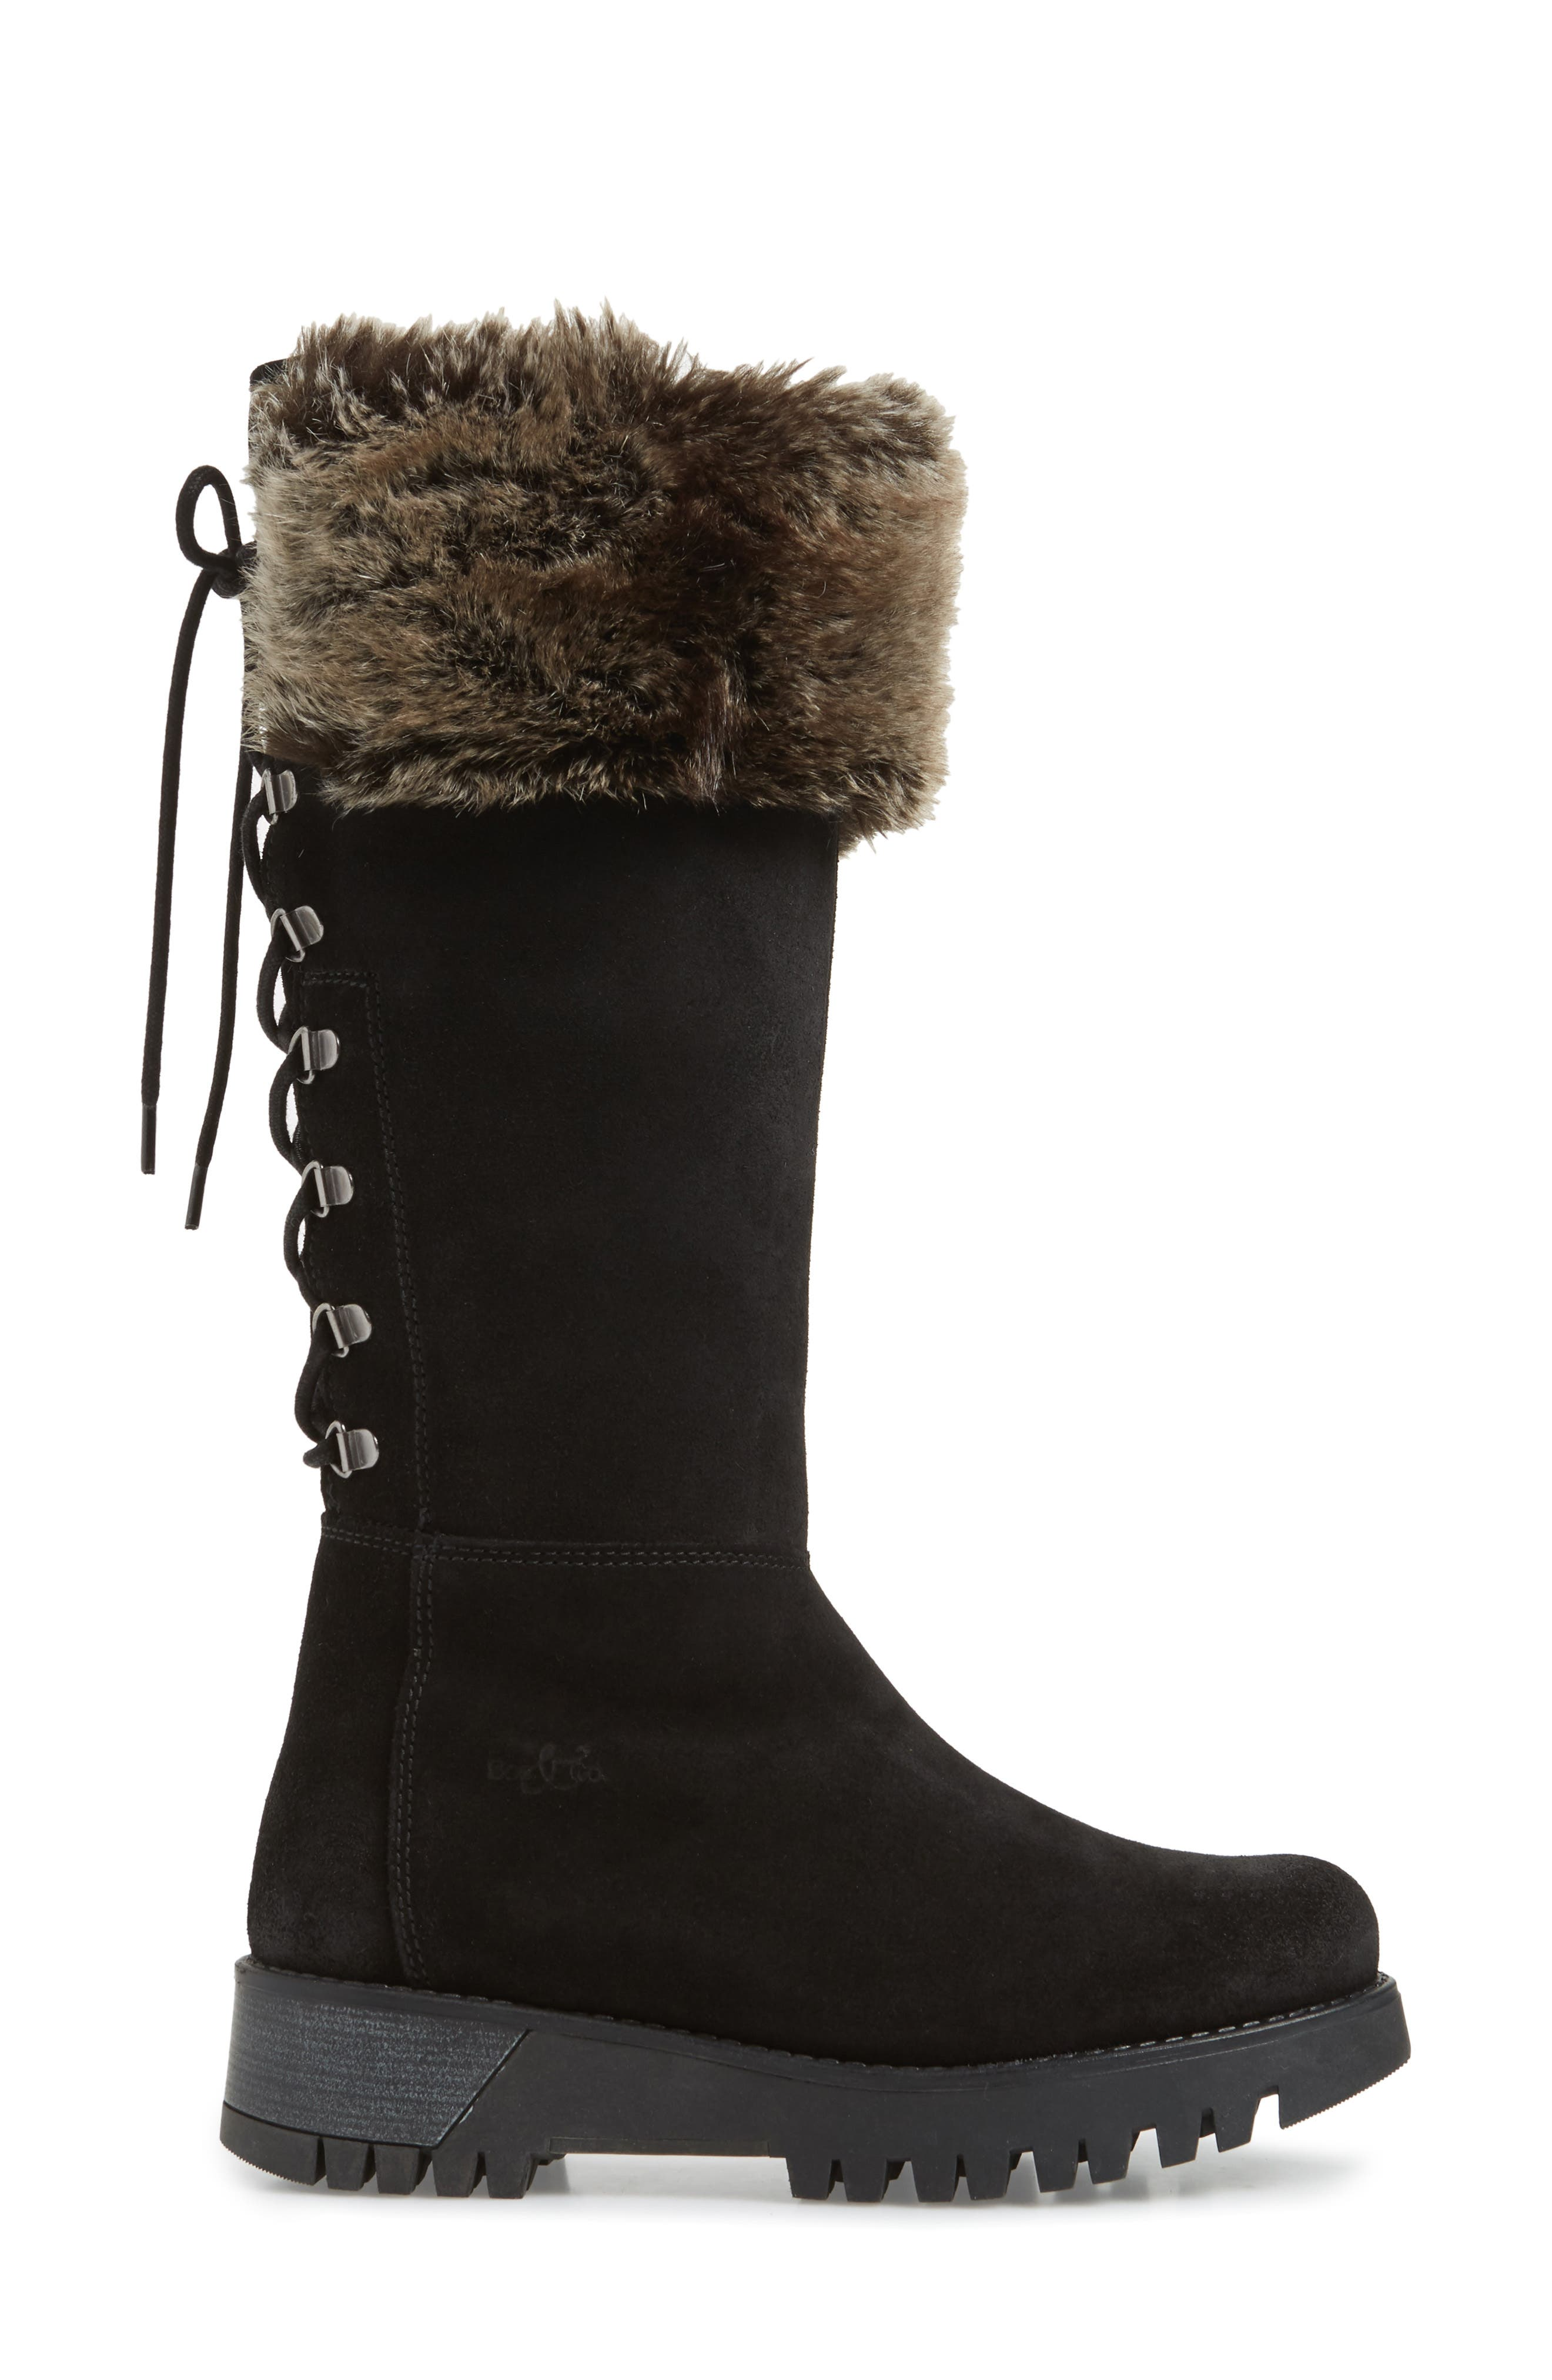 BOS. & CO., Graham Waterproof Winter Boot with Faux Fur Cuff, Alternate thumbnail 3, color, BLACK SUEDE